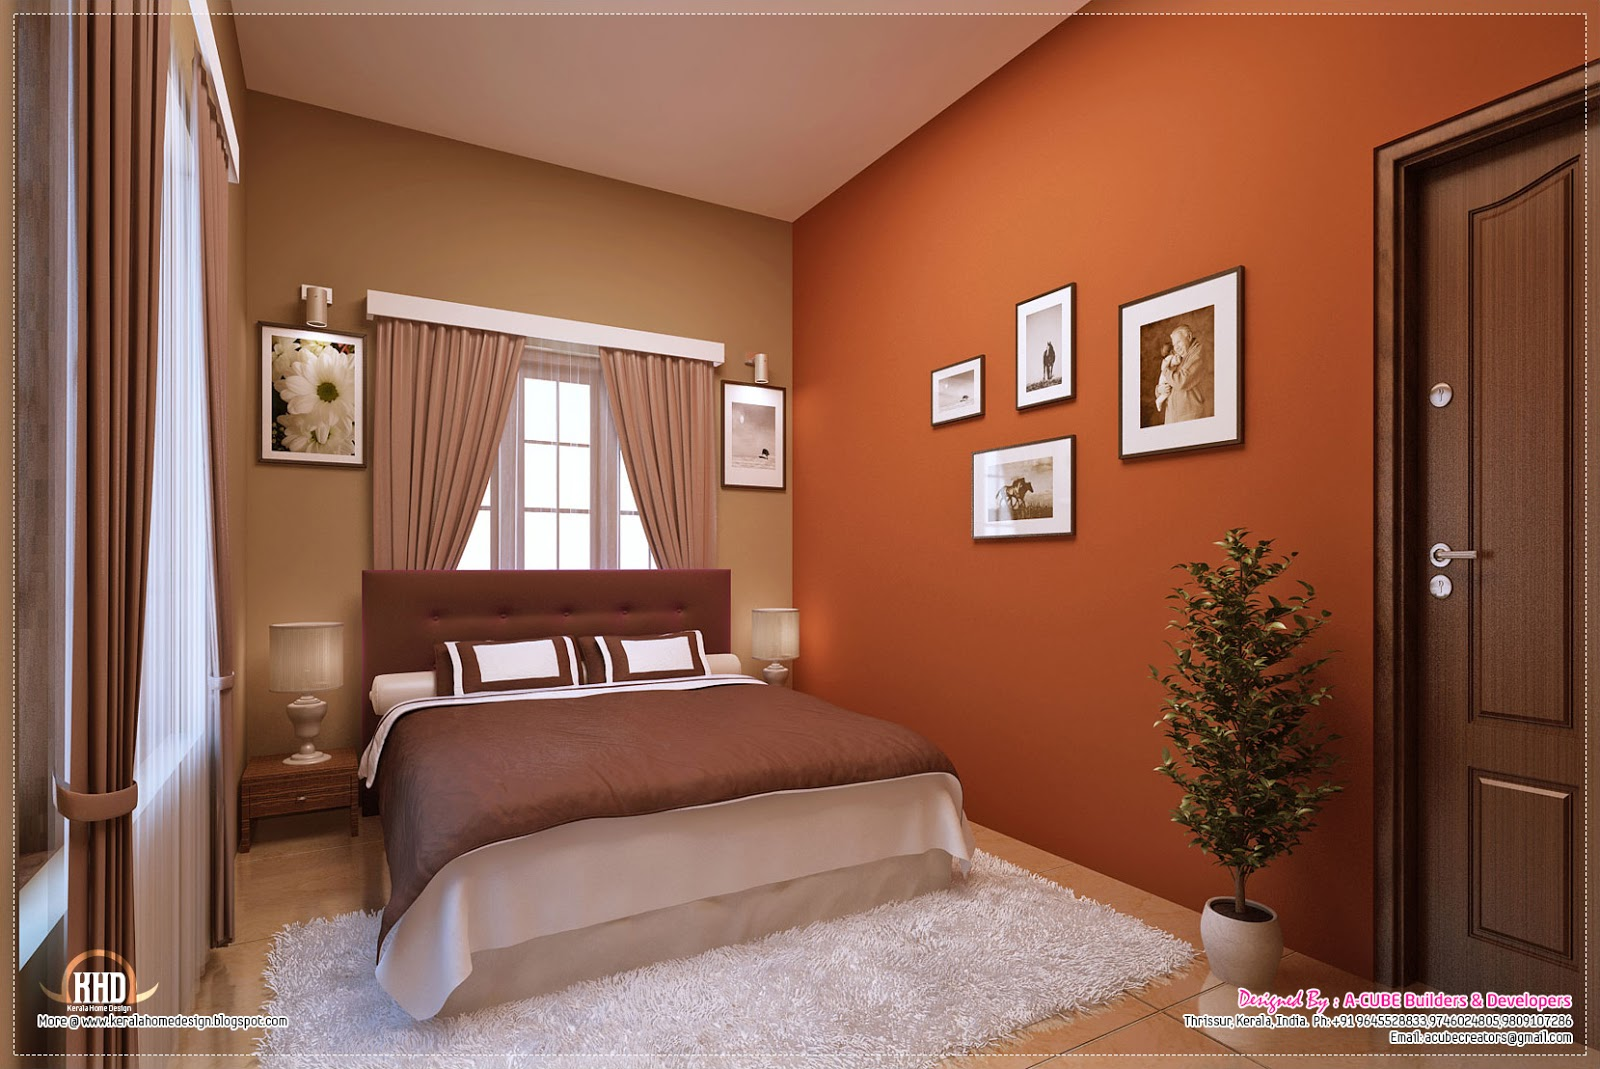 Awesome interior decoration ideas kerala home design and for Home interior bedroom